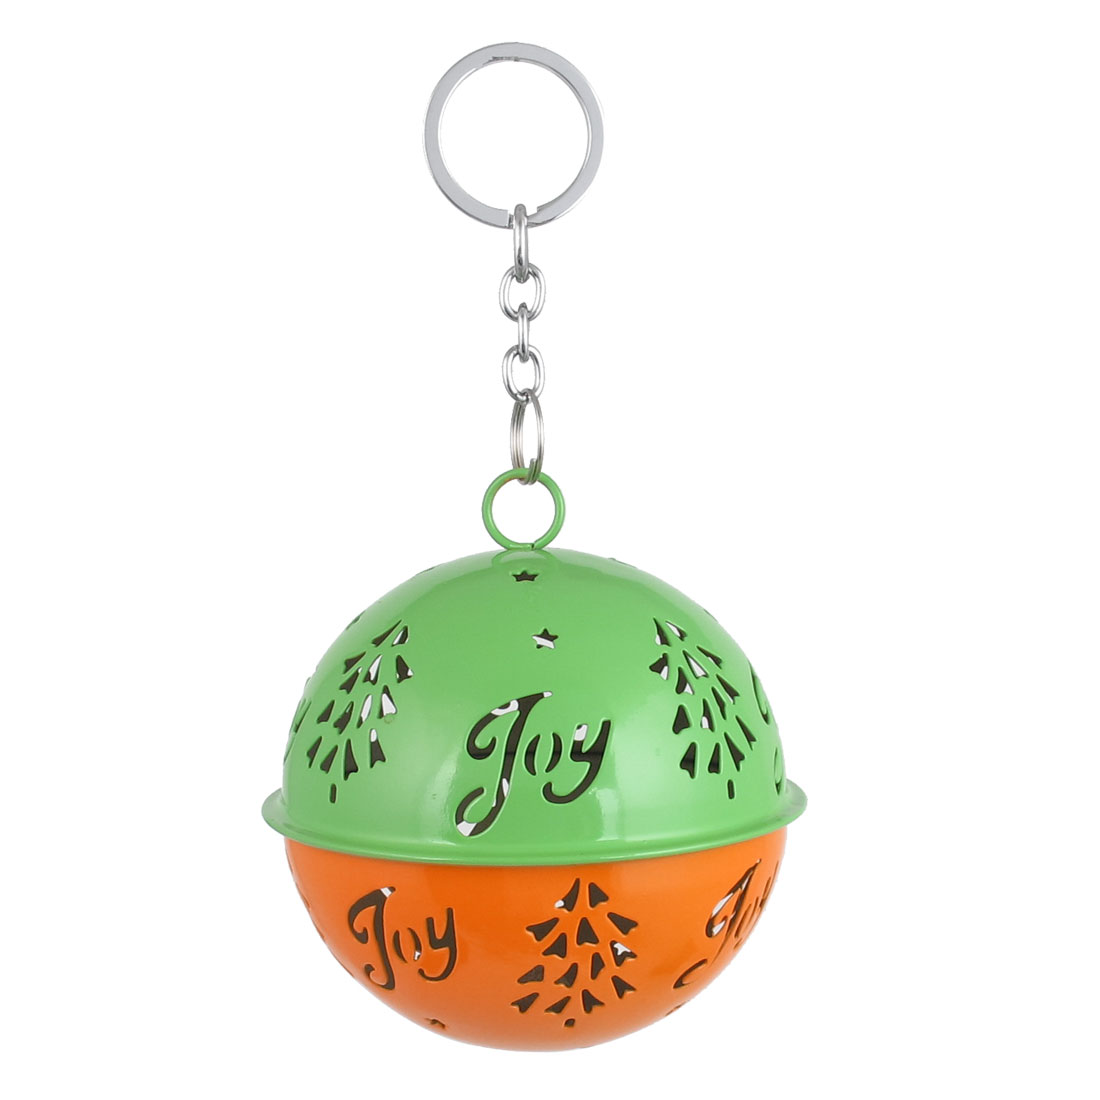 85mm Diameter Orange Green Metal Christmas Tree Detail Ball Shape Keychain Hollow Out Design Jingle Ring Bell Ornament for Celebration Party Case